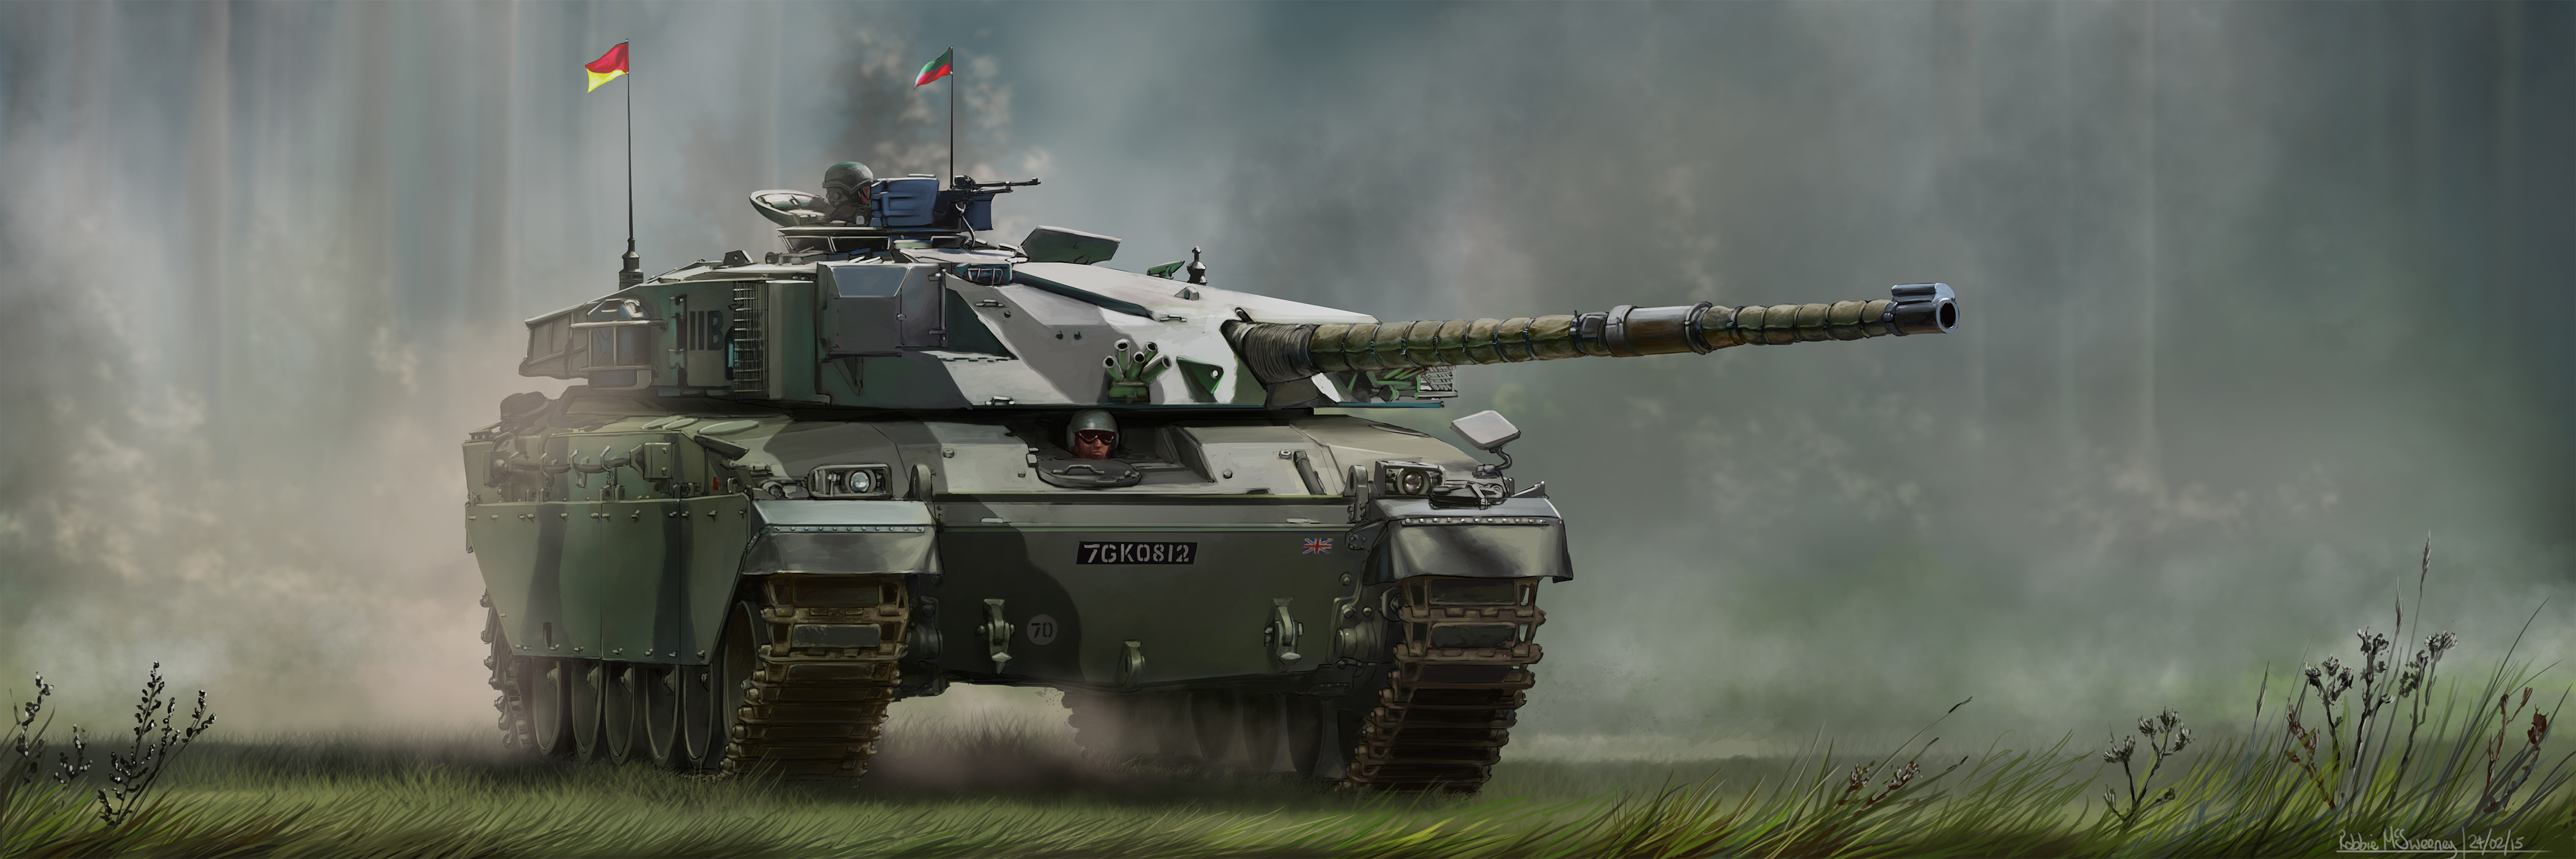 Challenger Mark 1 tank commision 2 final